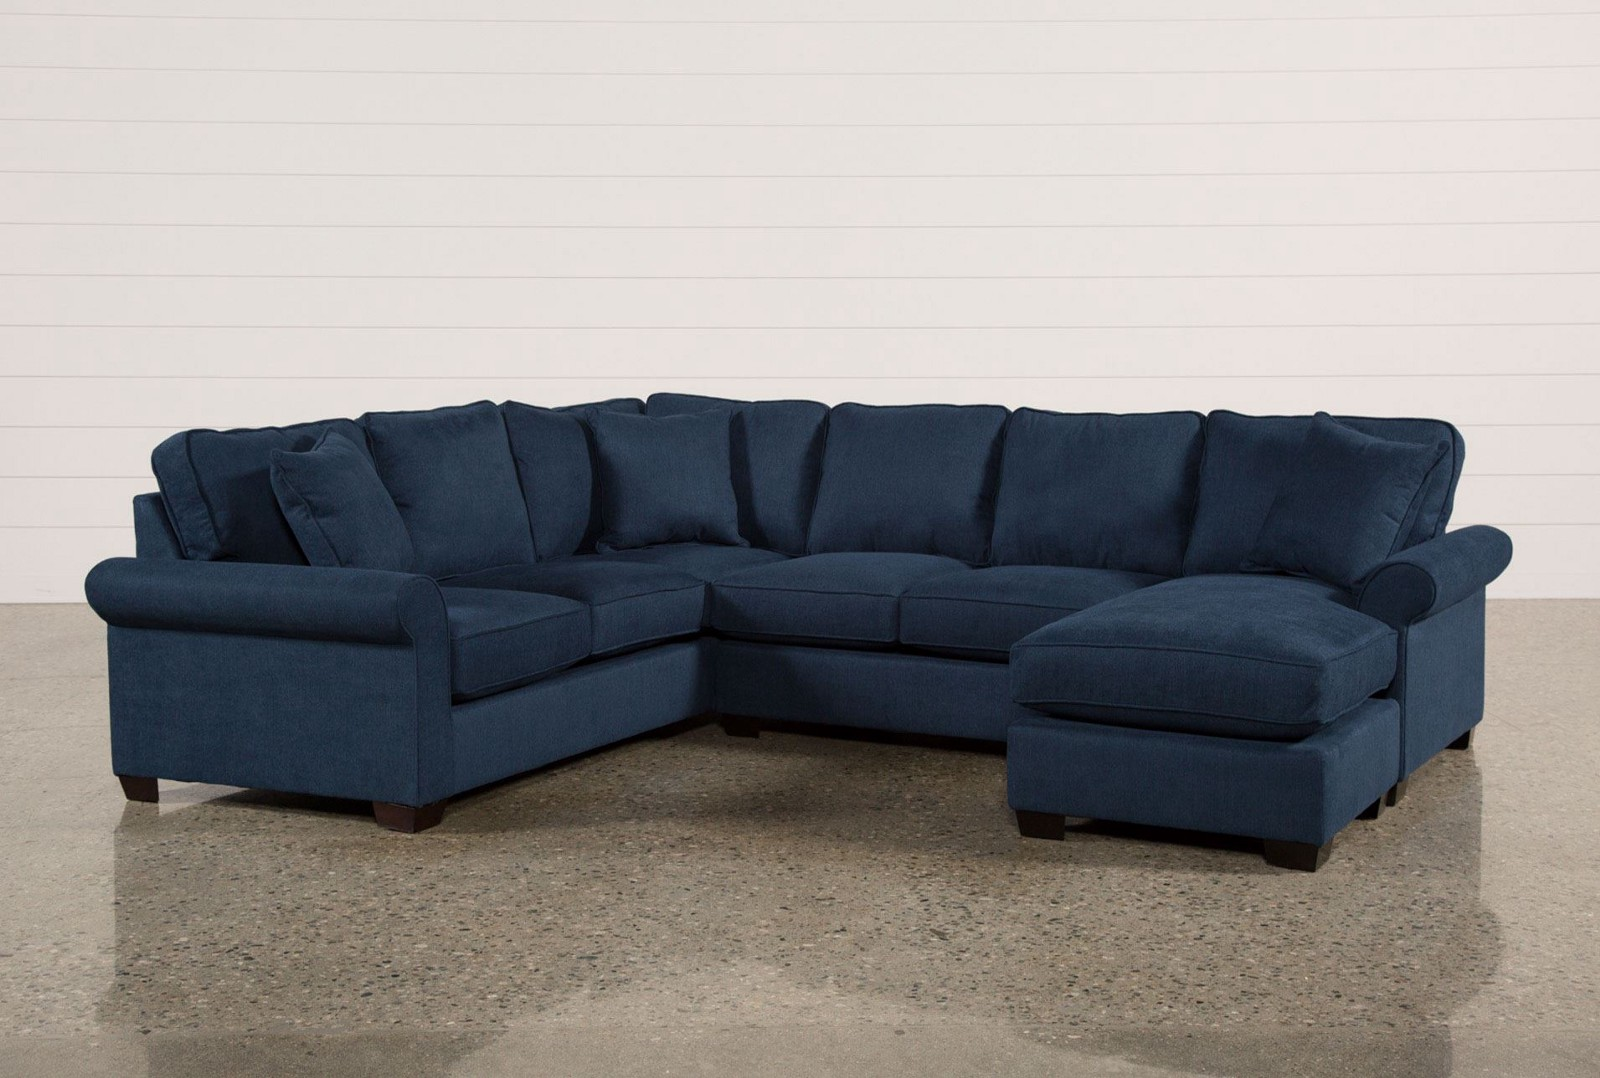 If Your Room Has Little Space, At That Point The Couch Is Any Time A Better  Decision Than The Sofa.